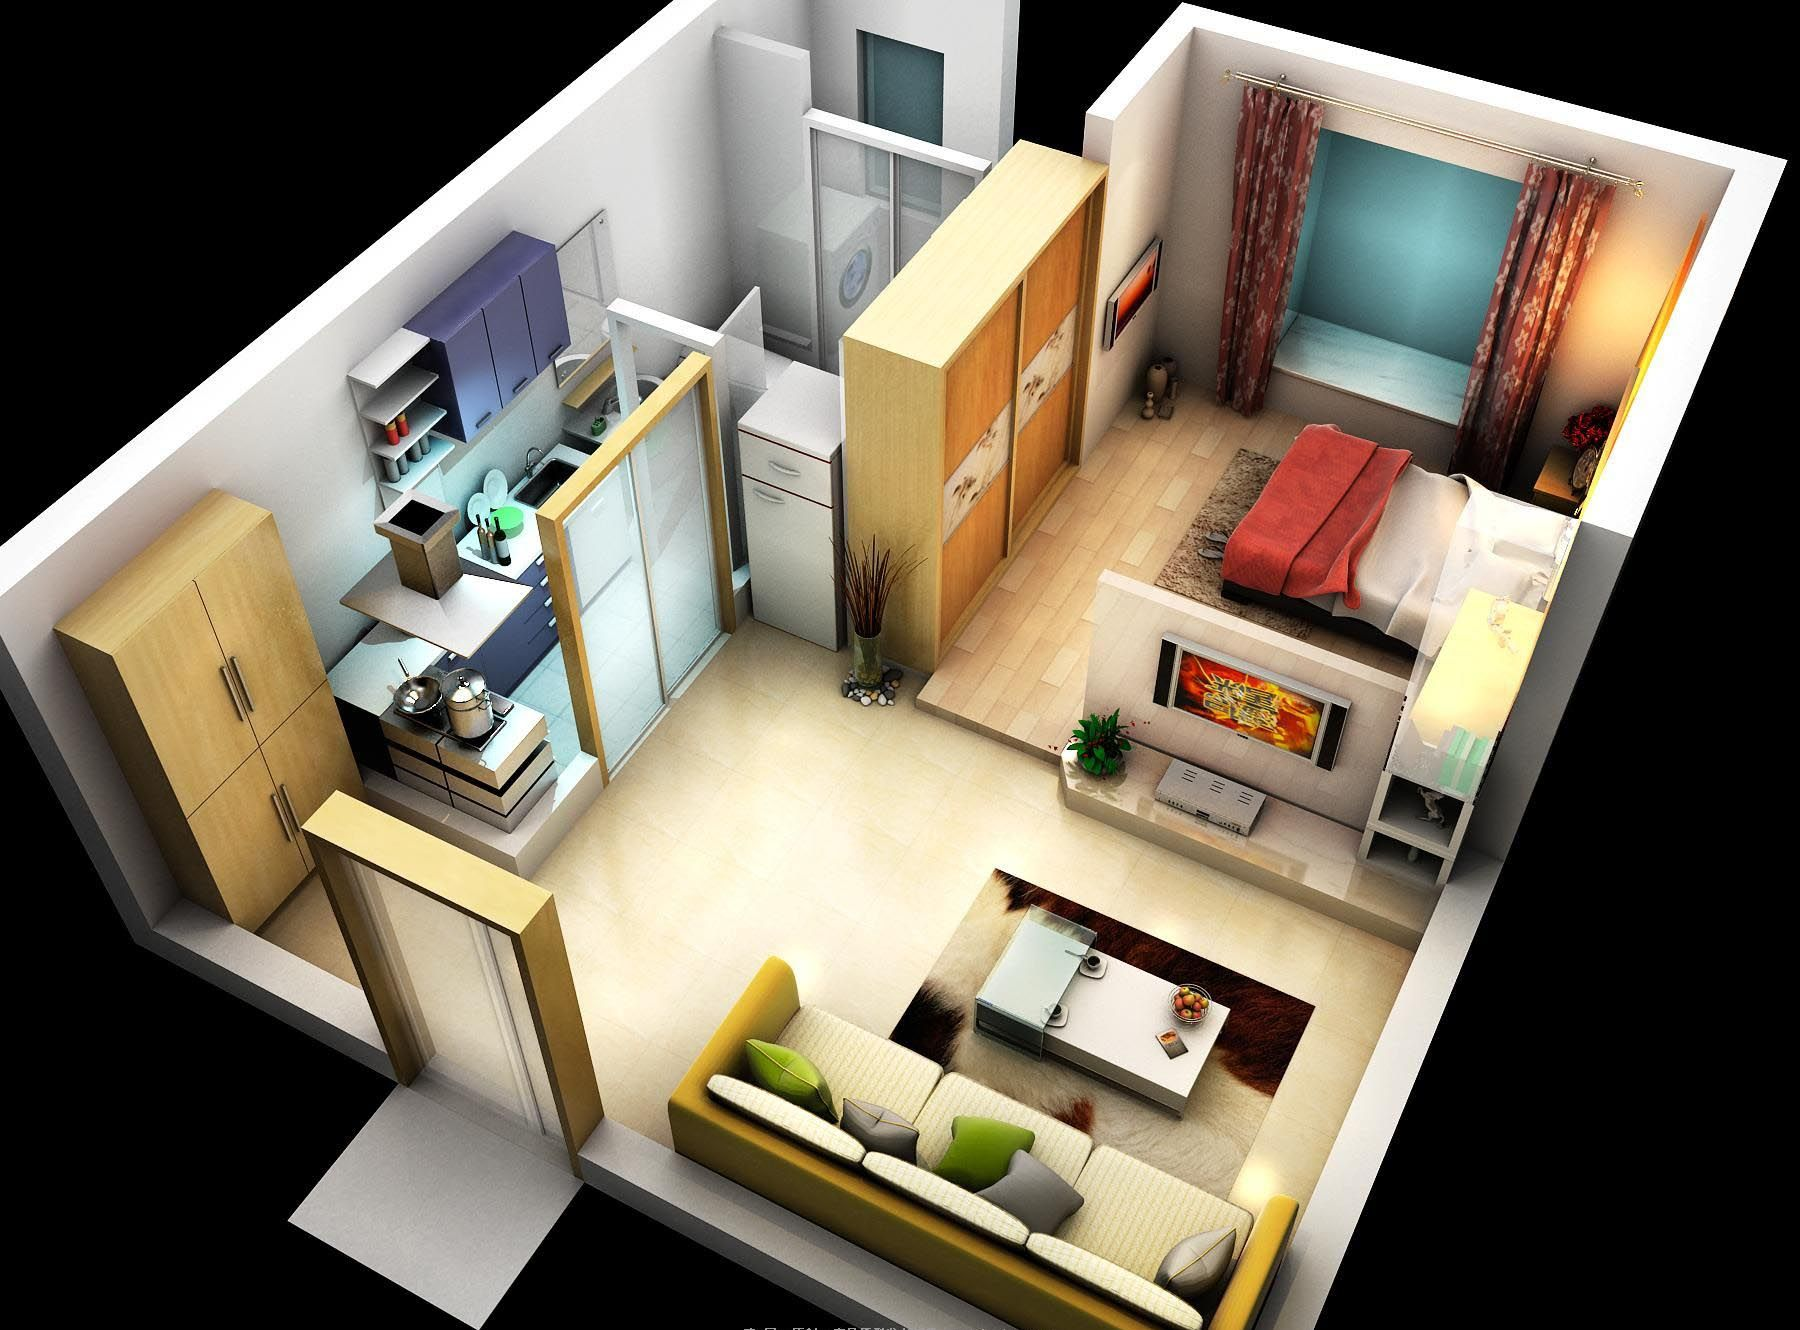 Condo 001 3d Model Made Using Vray Scene Is As Shown Includes All Lights Cameras And Settings Interior Architecture Design House Plans Interior Architecture